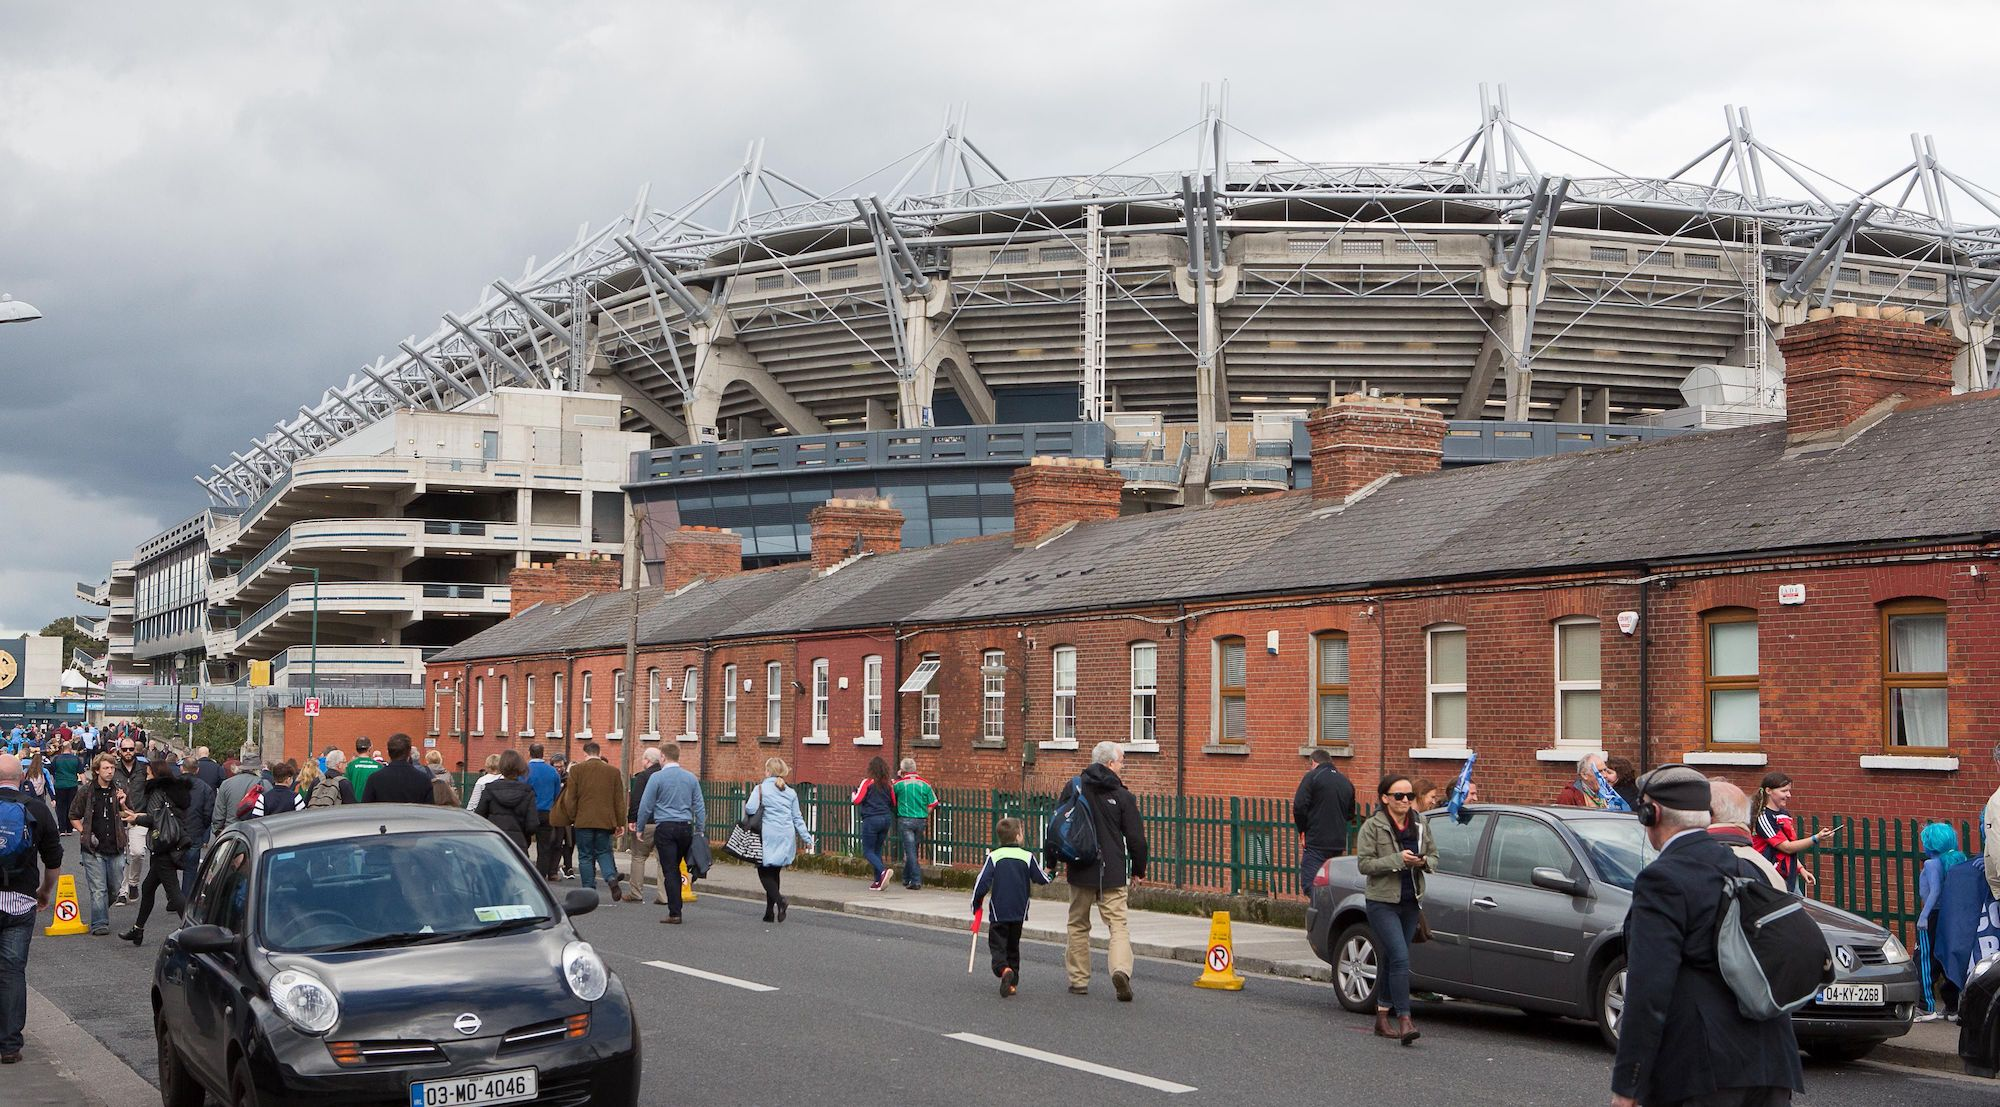 Supporters arrive outside Croke Park for the GAA All-Ireland Gaelic Football Final replay match between Dublin and Mayo at Croke Park, Dublin, Ireland, on October 1, 2016. Photo: Karl Burke/AFP. The biggest crowd in Europe on Saturday will not be watching detached professionals kissing the badge of their latest football team, but at the All-Ireland Gaelic football final. Two amateur teams, Dublin and Mayo, will attempt to win the coveted All-Ireland trophy for Gaelic football in a replay following a rare draw two weeks ago. / AFP / Karl Burke (Photo credit should read KARL BURKE/AFP via Getty Images)